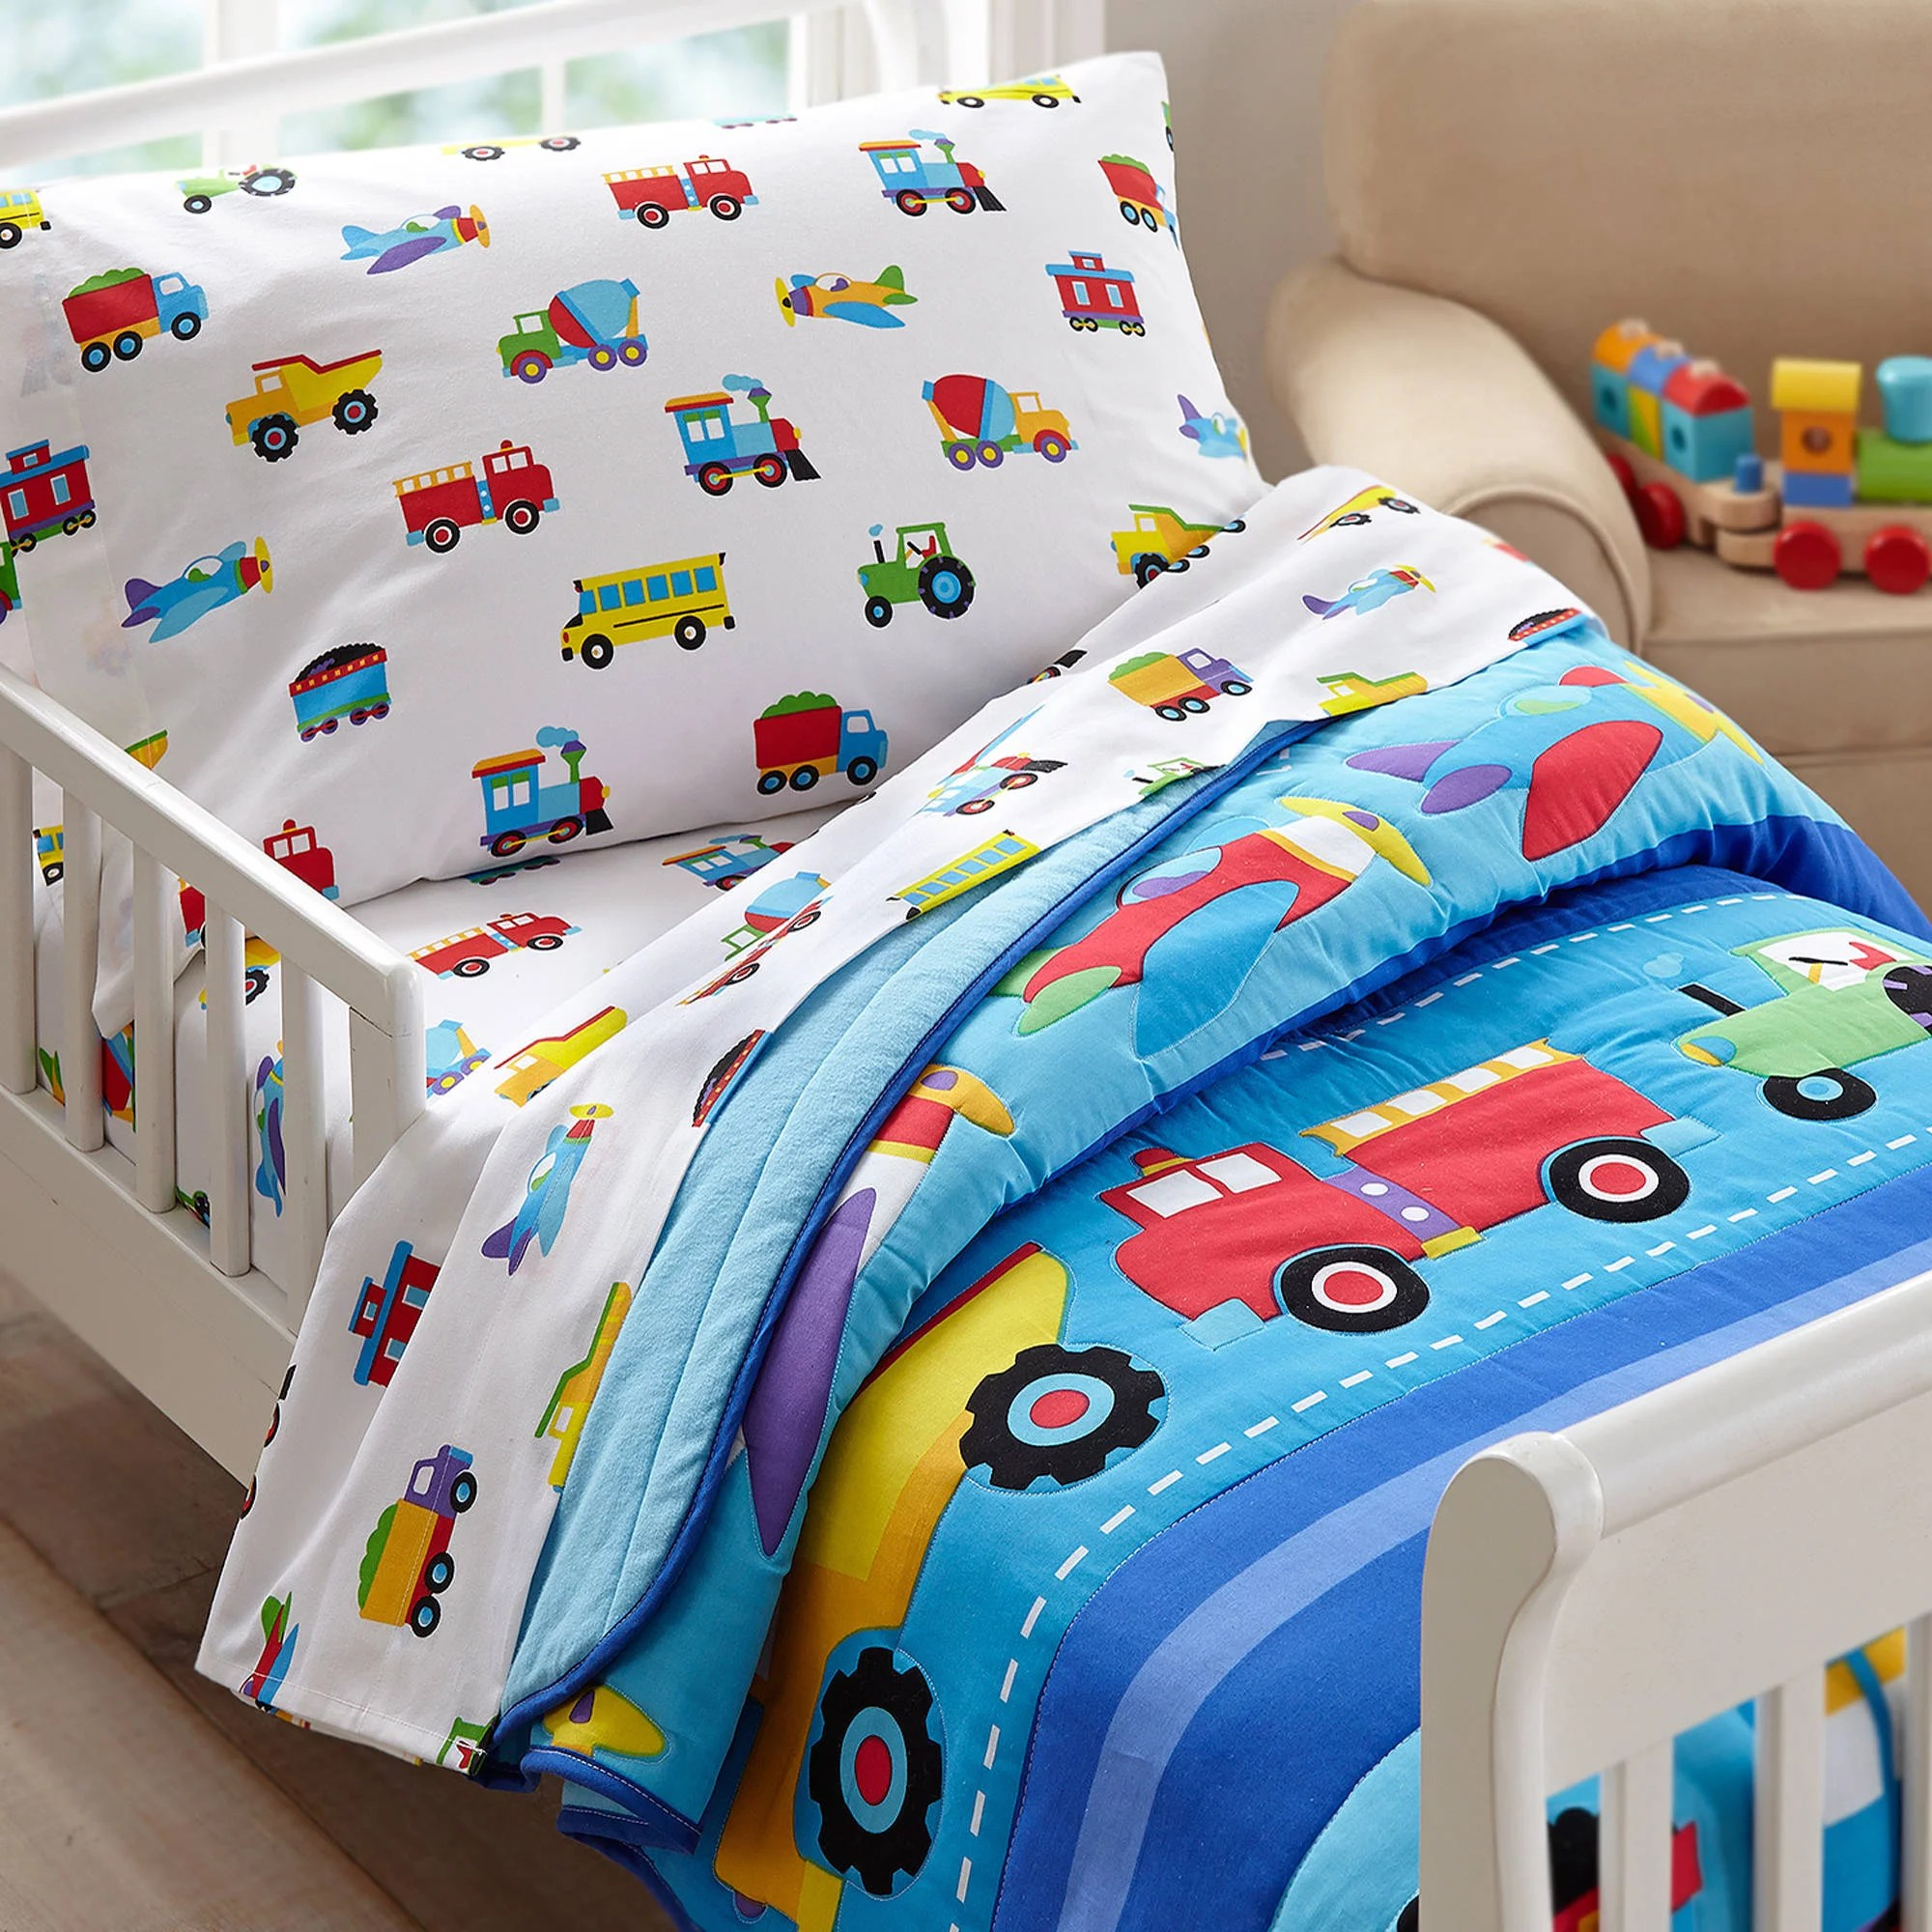 olive kids trains, planes, trucks toddler bedding comforter